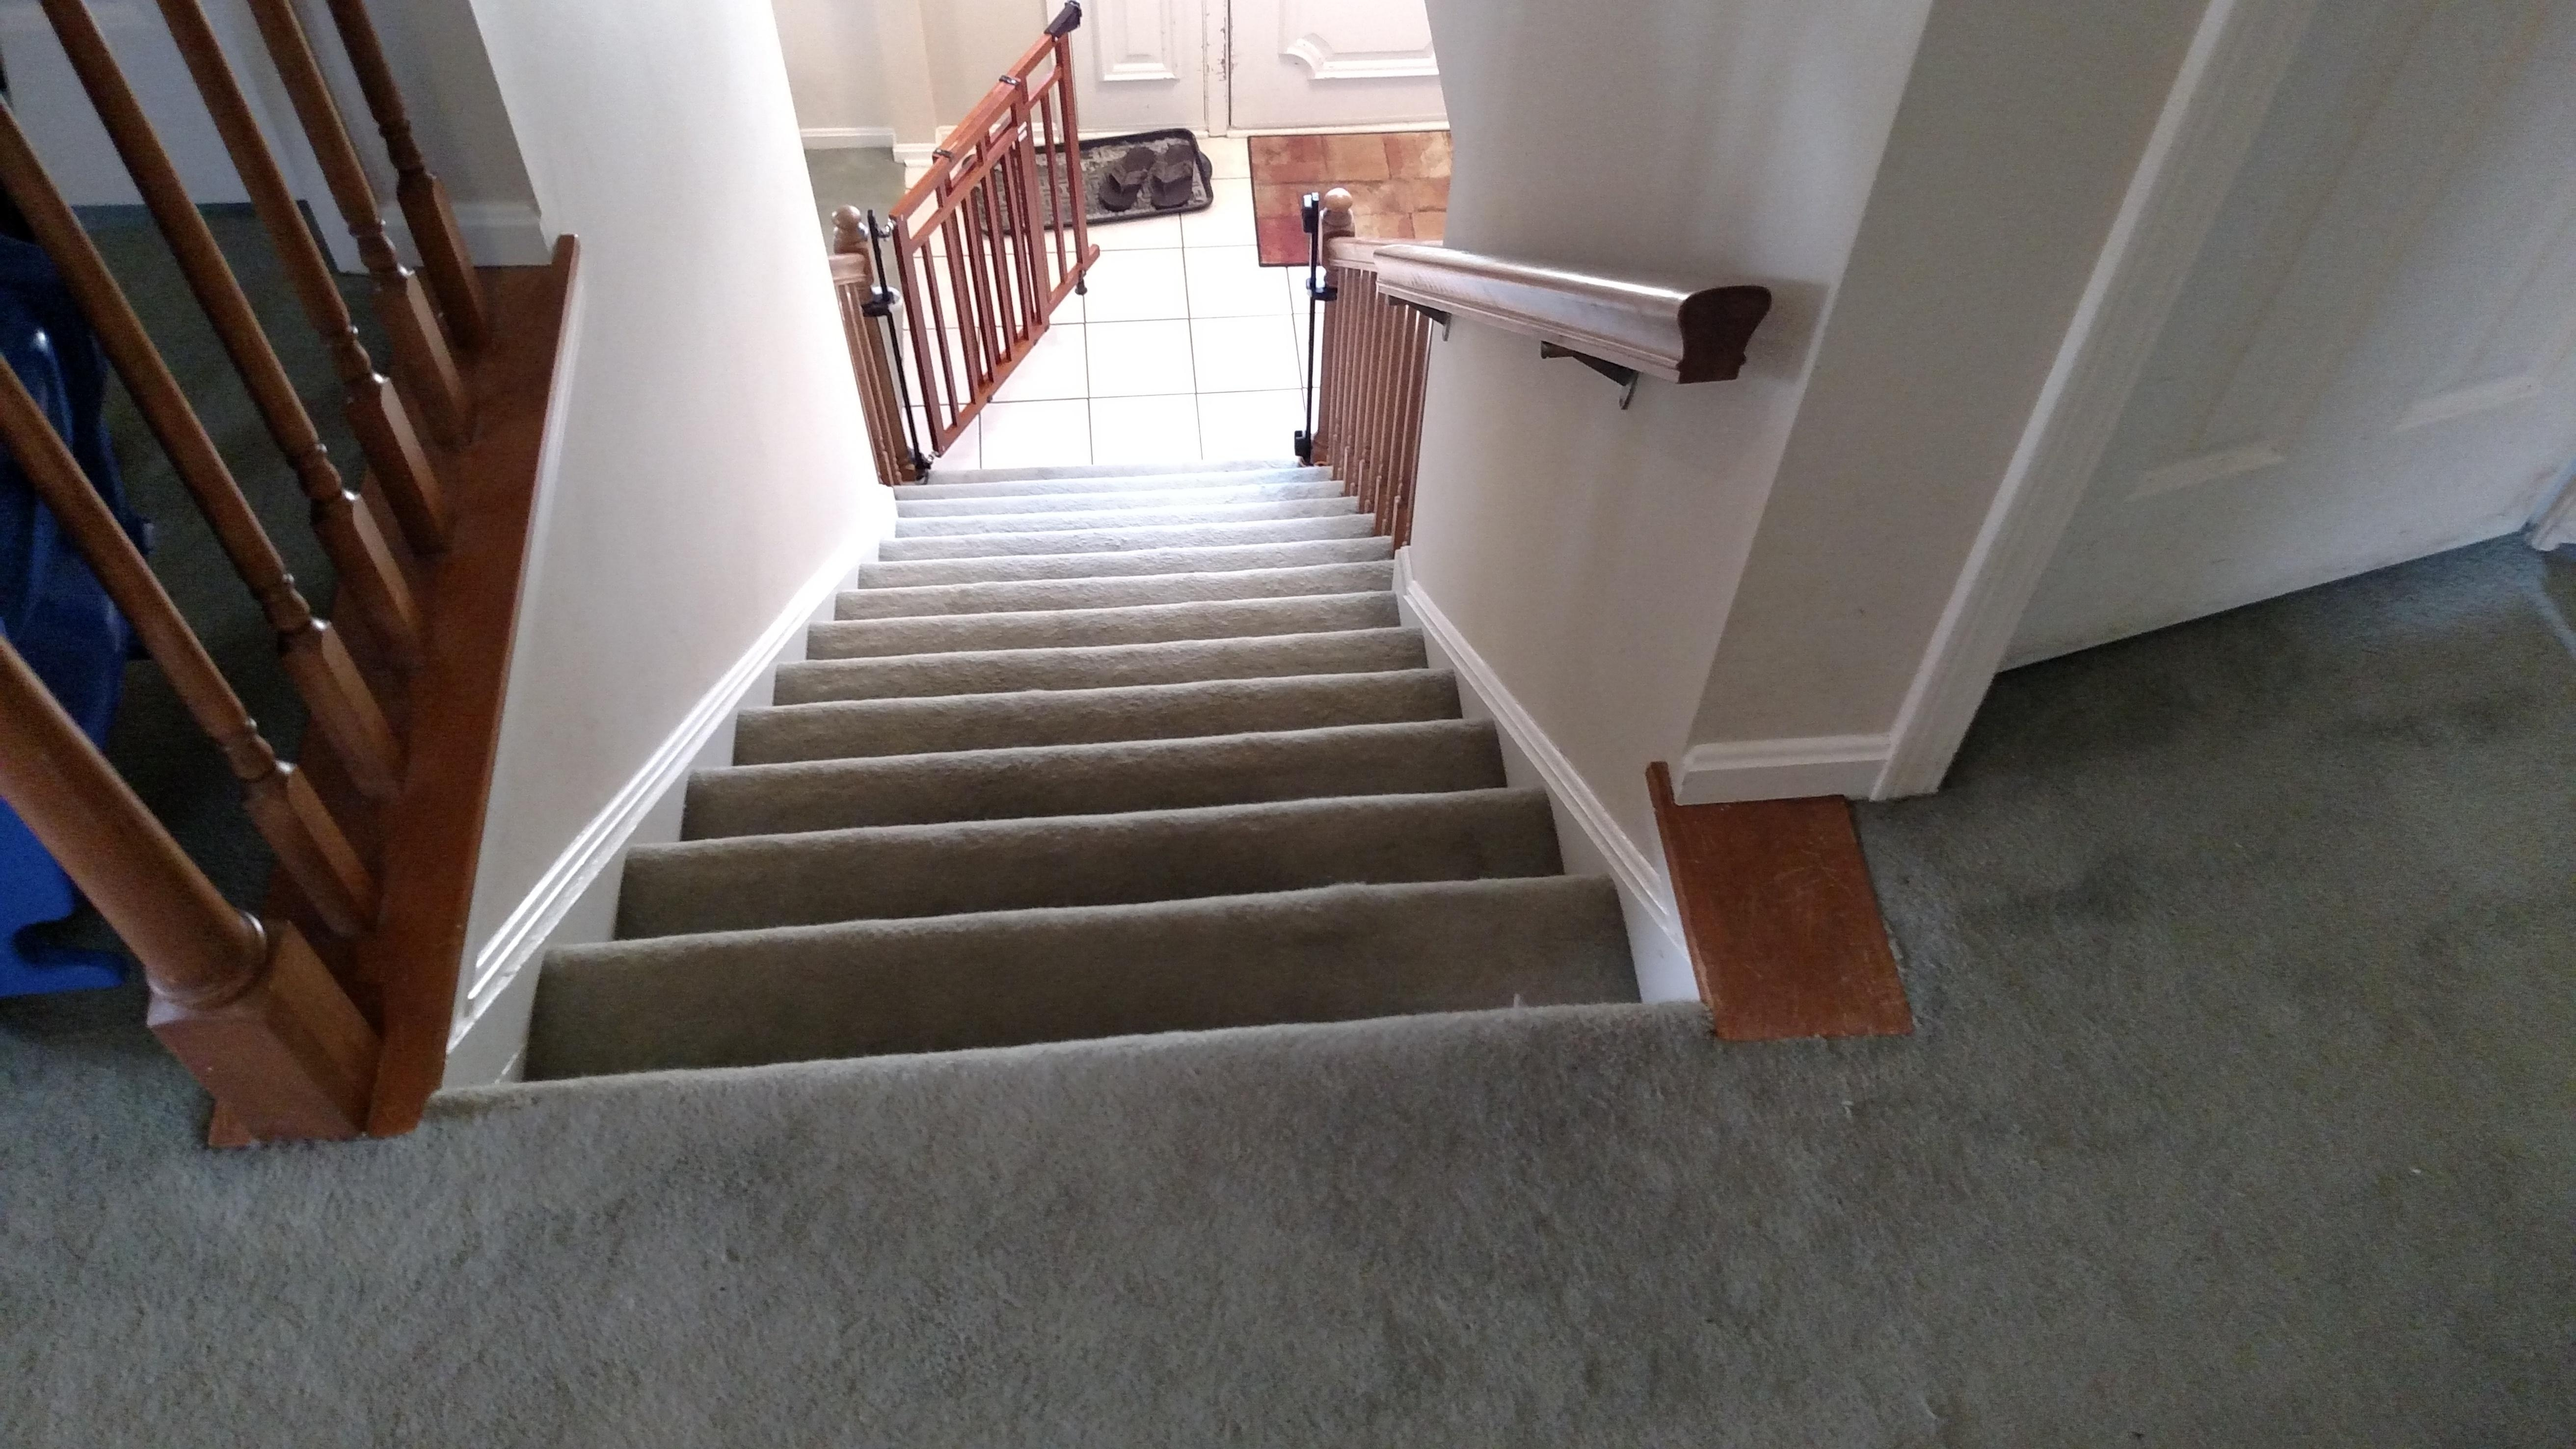 Need Suggestions For Baby Gate At Top Of Stairs The Wall Stops | Top Of Stairs Banister | High End | Indoor | Barn Beam | Redo | Glass